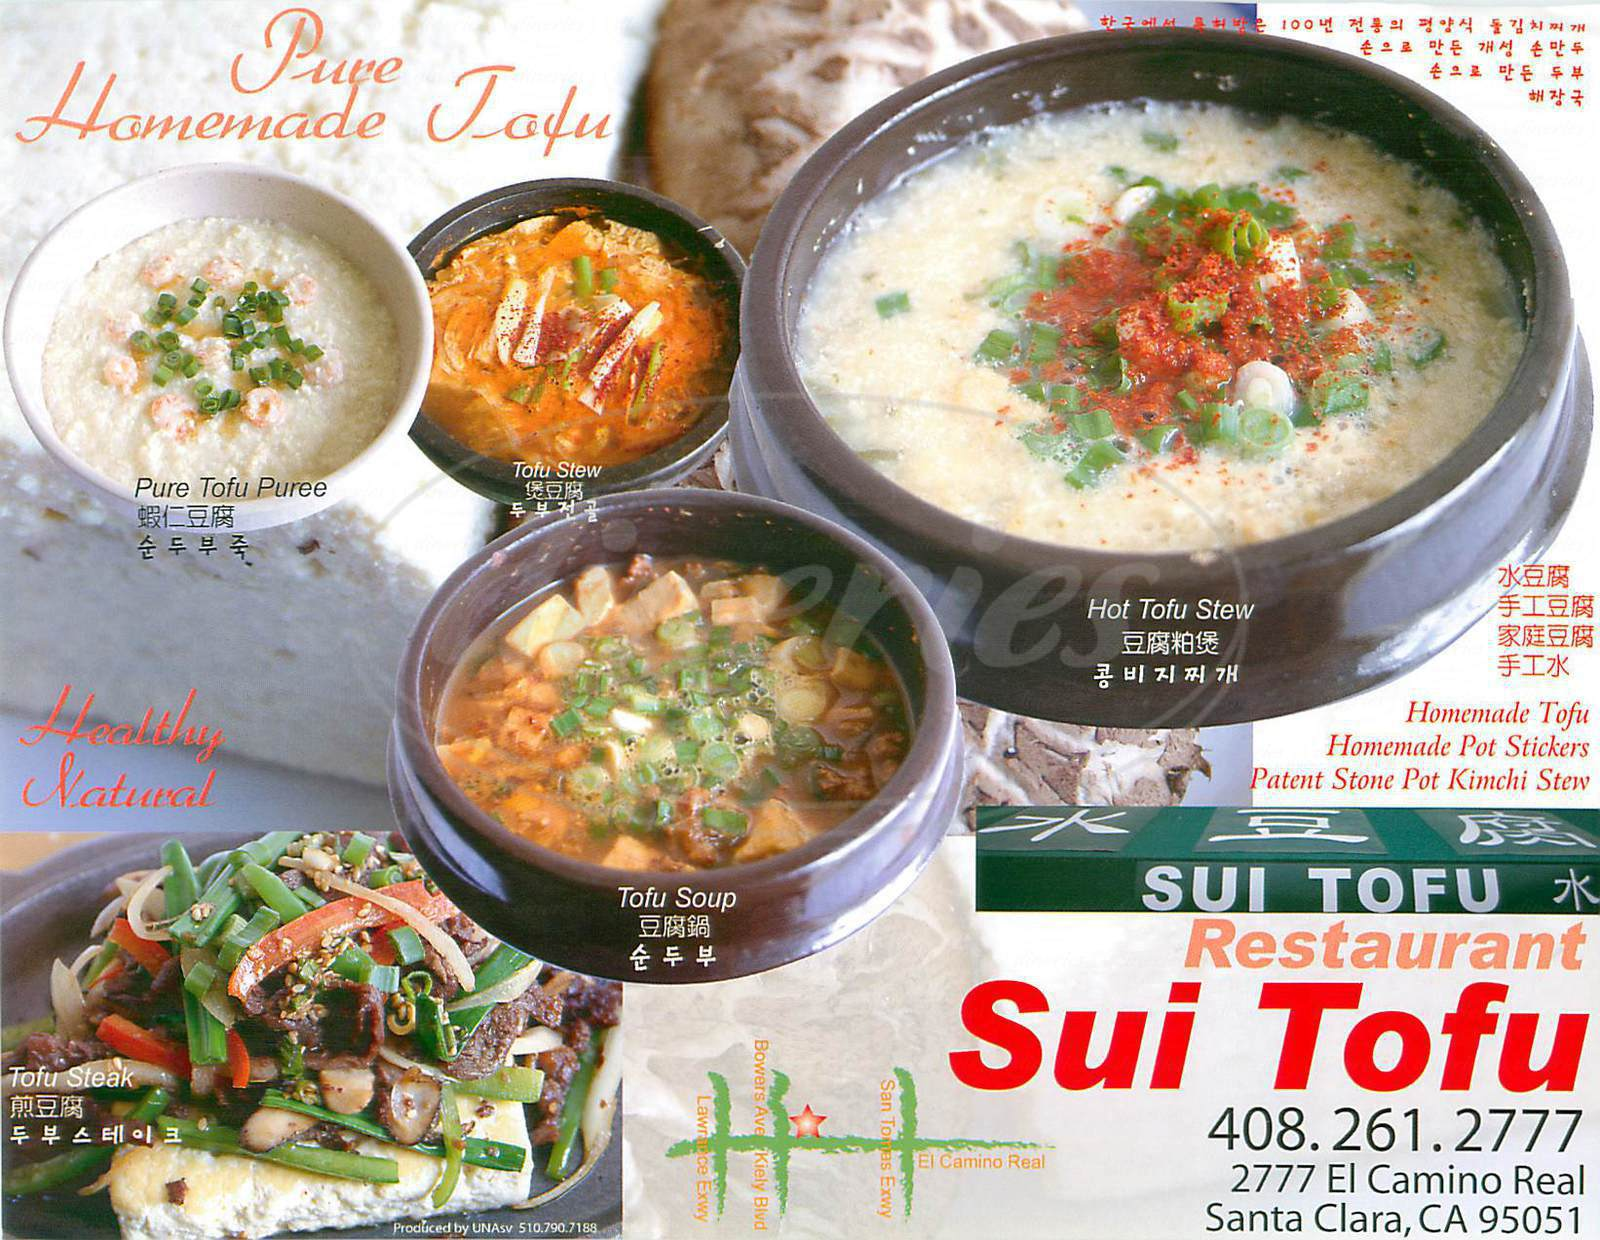 menu for Sui Tofu Restaurant